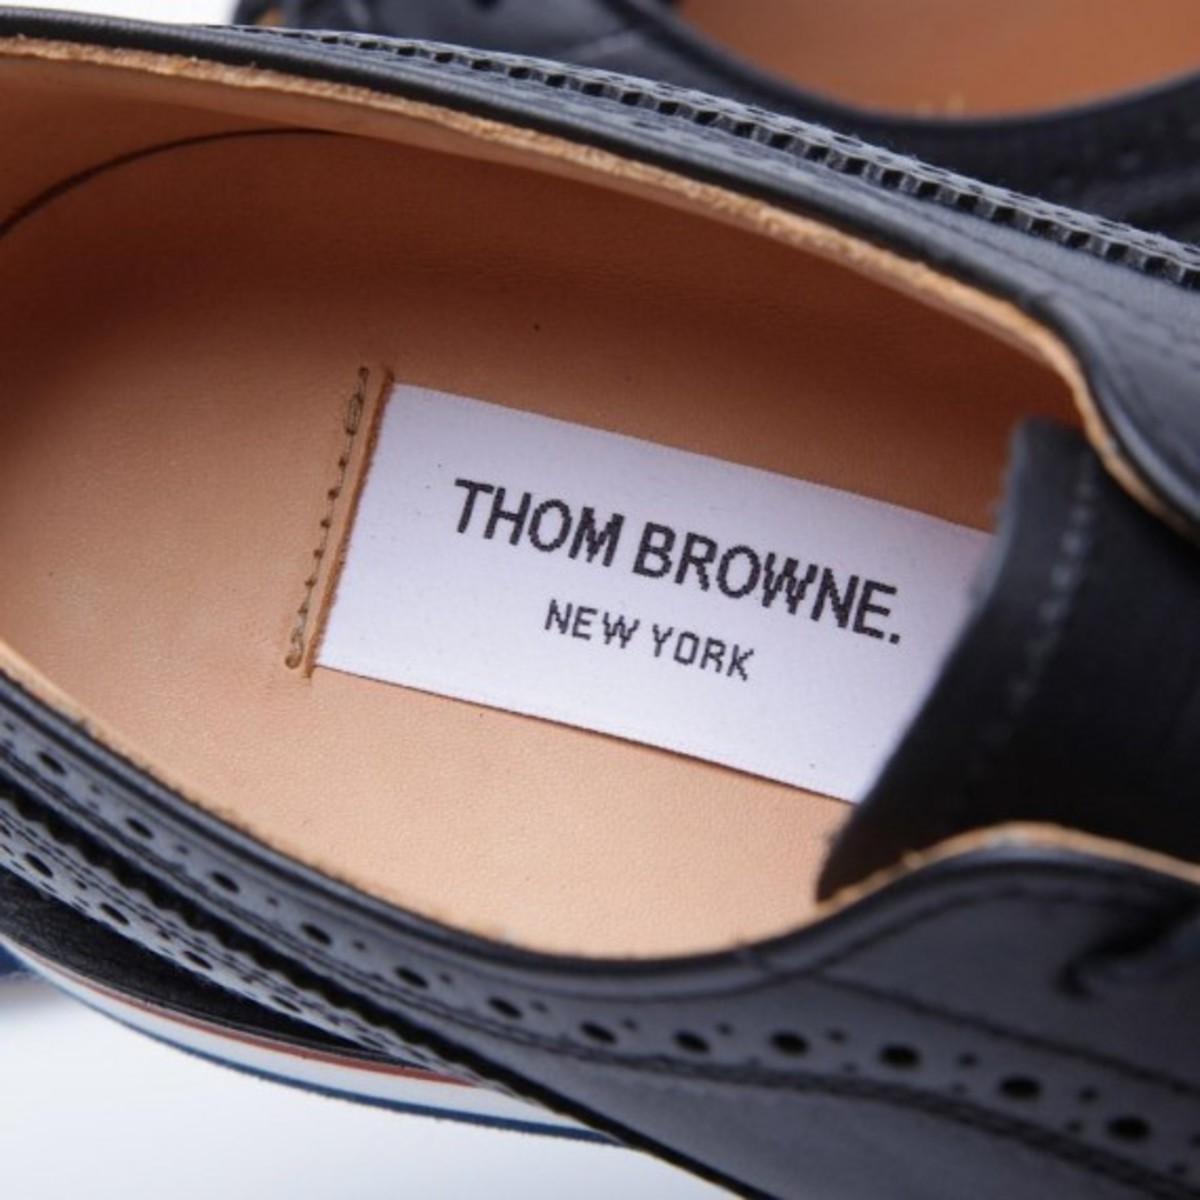 thom-browne-wedge-sole-long-wing-brogue-shoes-08